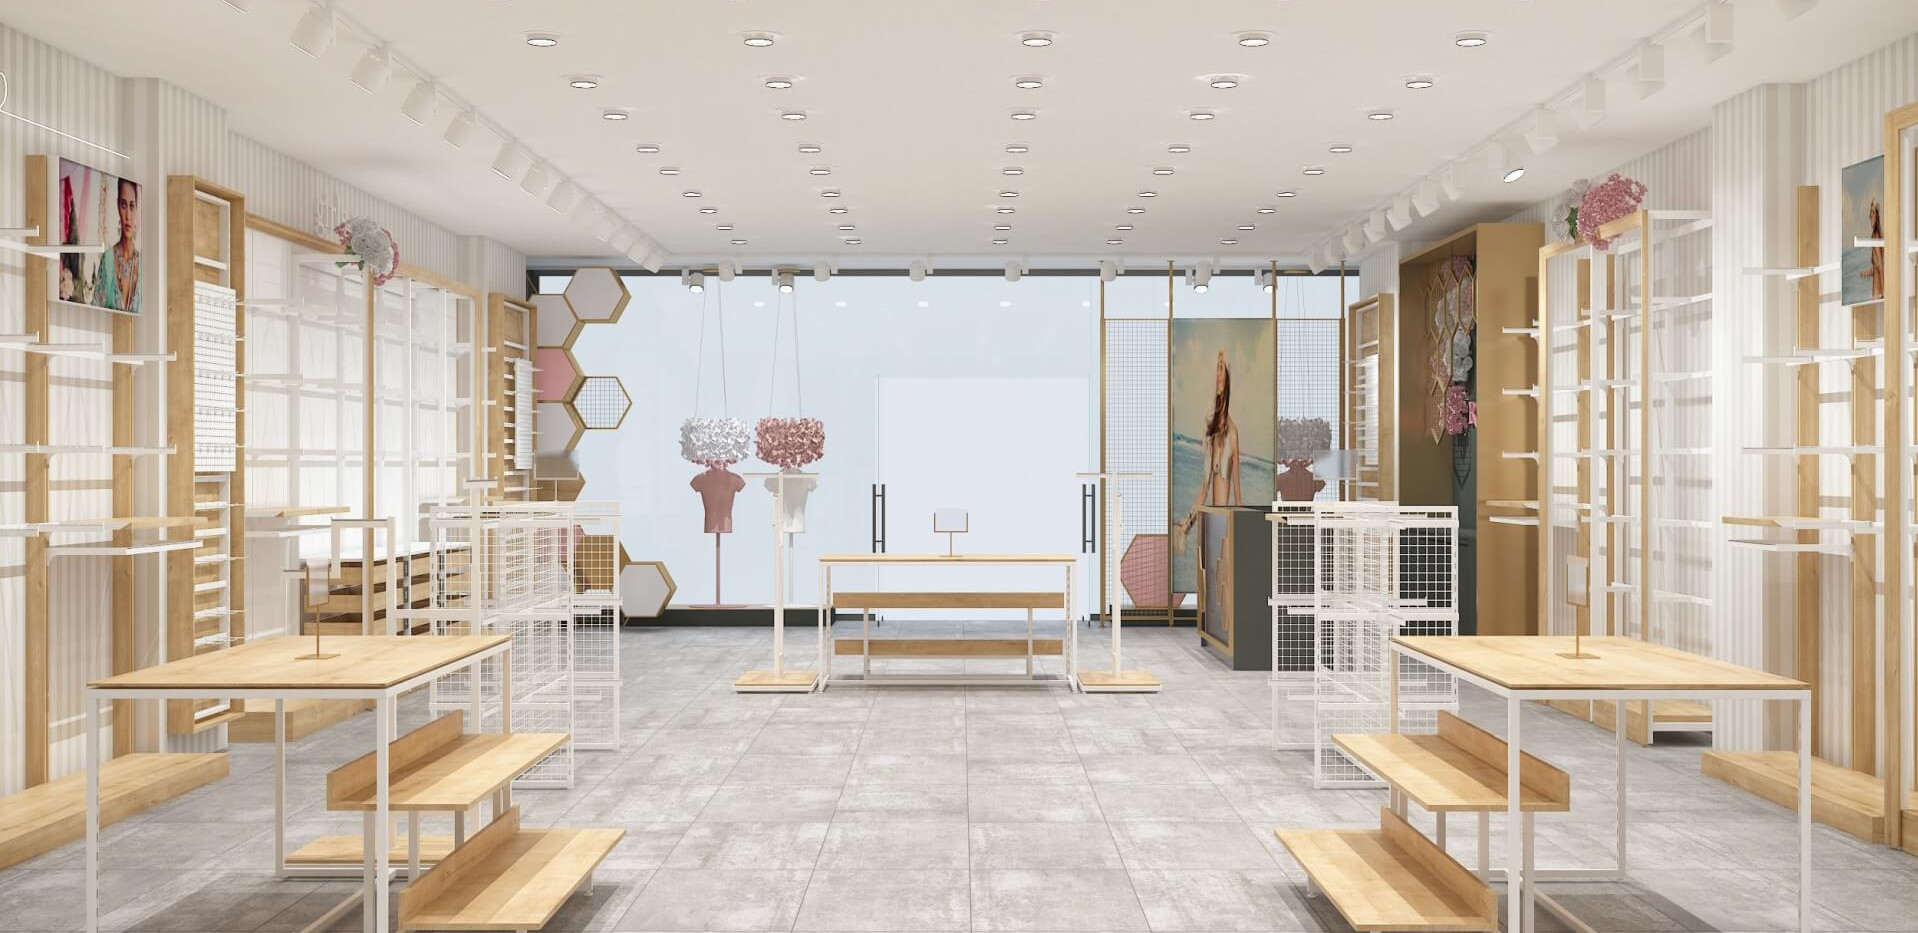 Rosabella - Fashion Store Shop Design-5.